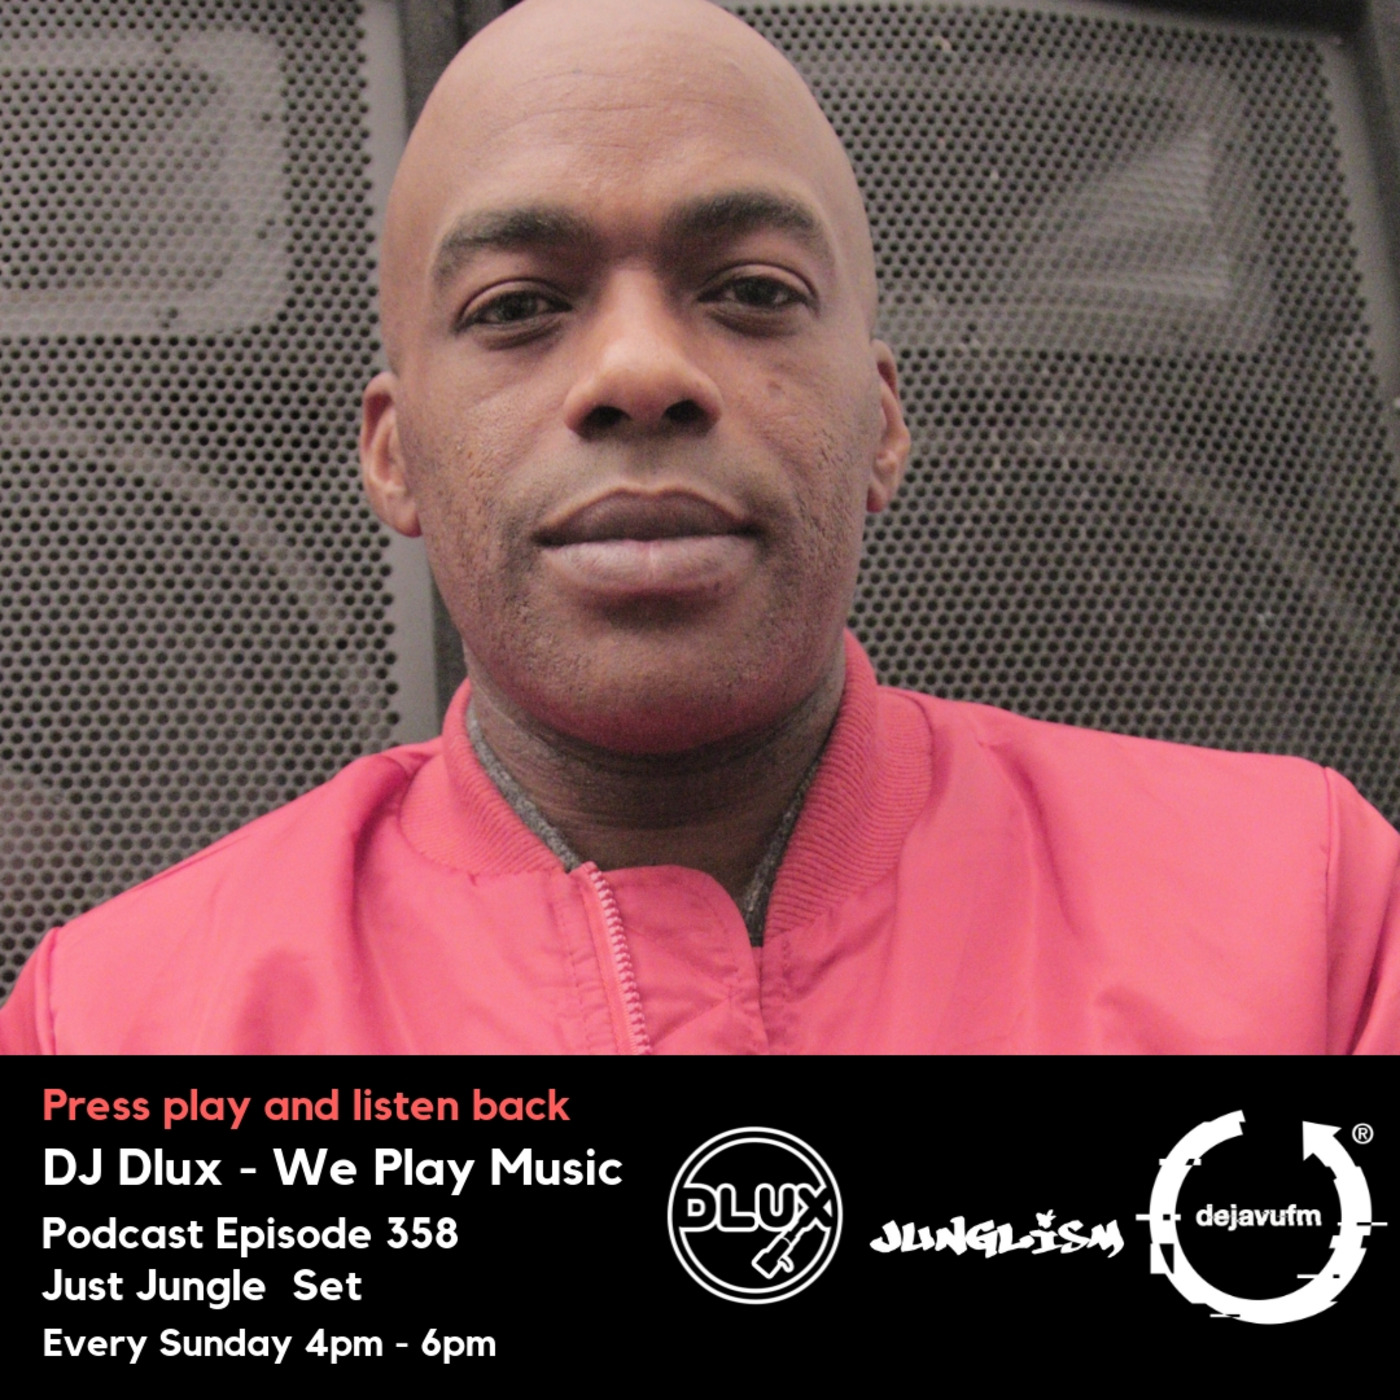 DJ Dlux - We Play Music - Podcast Episode 358 - Just Jungle